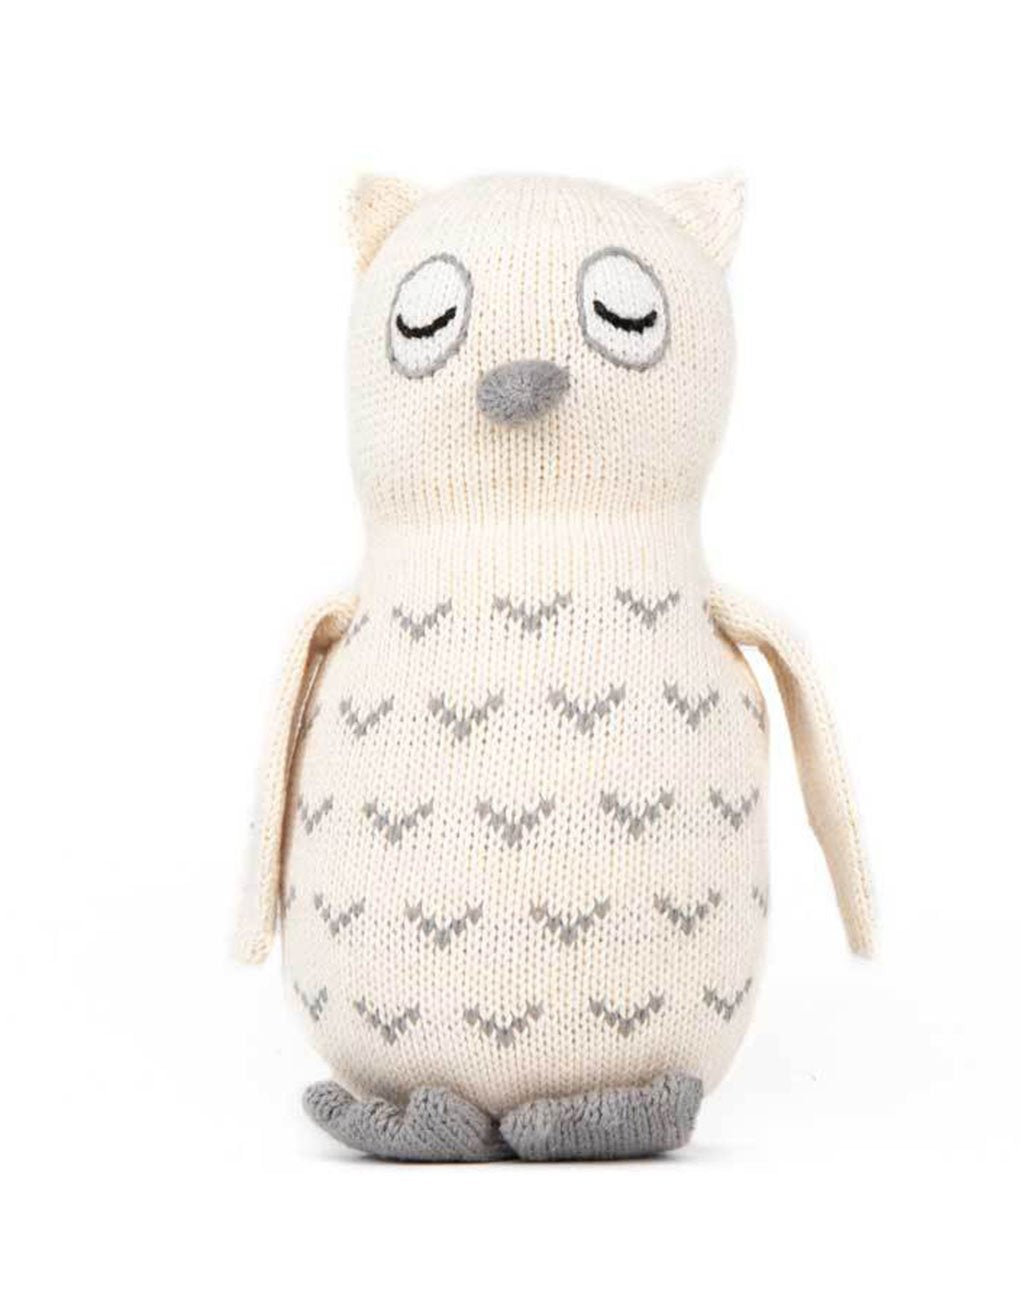 Owl Stuffed Animal | The Little Market